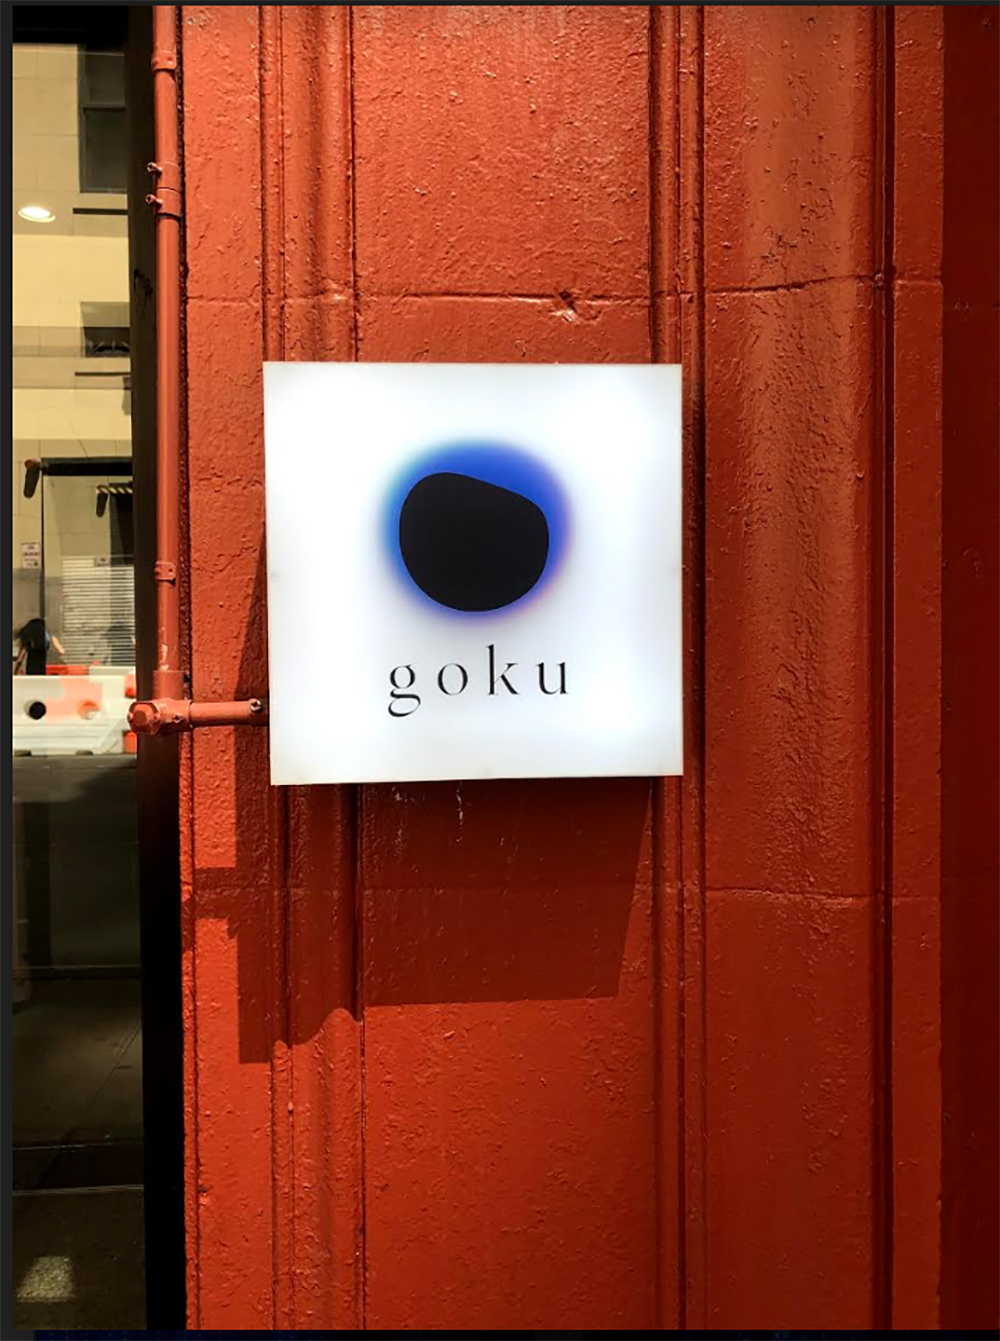 Goku first opened in Kyoto, Japan in 2008 and has been wildly successful with a typical waitlist of 430,000 customers.